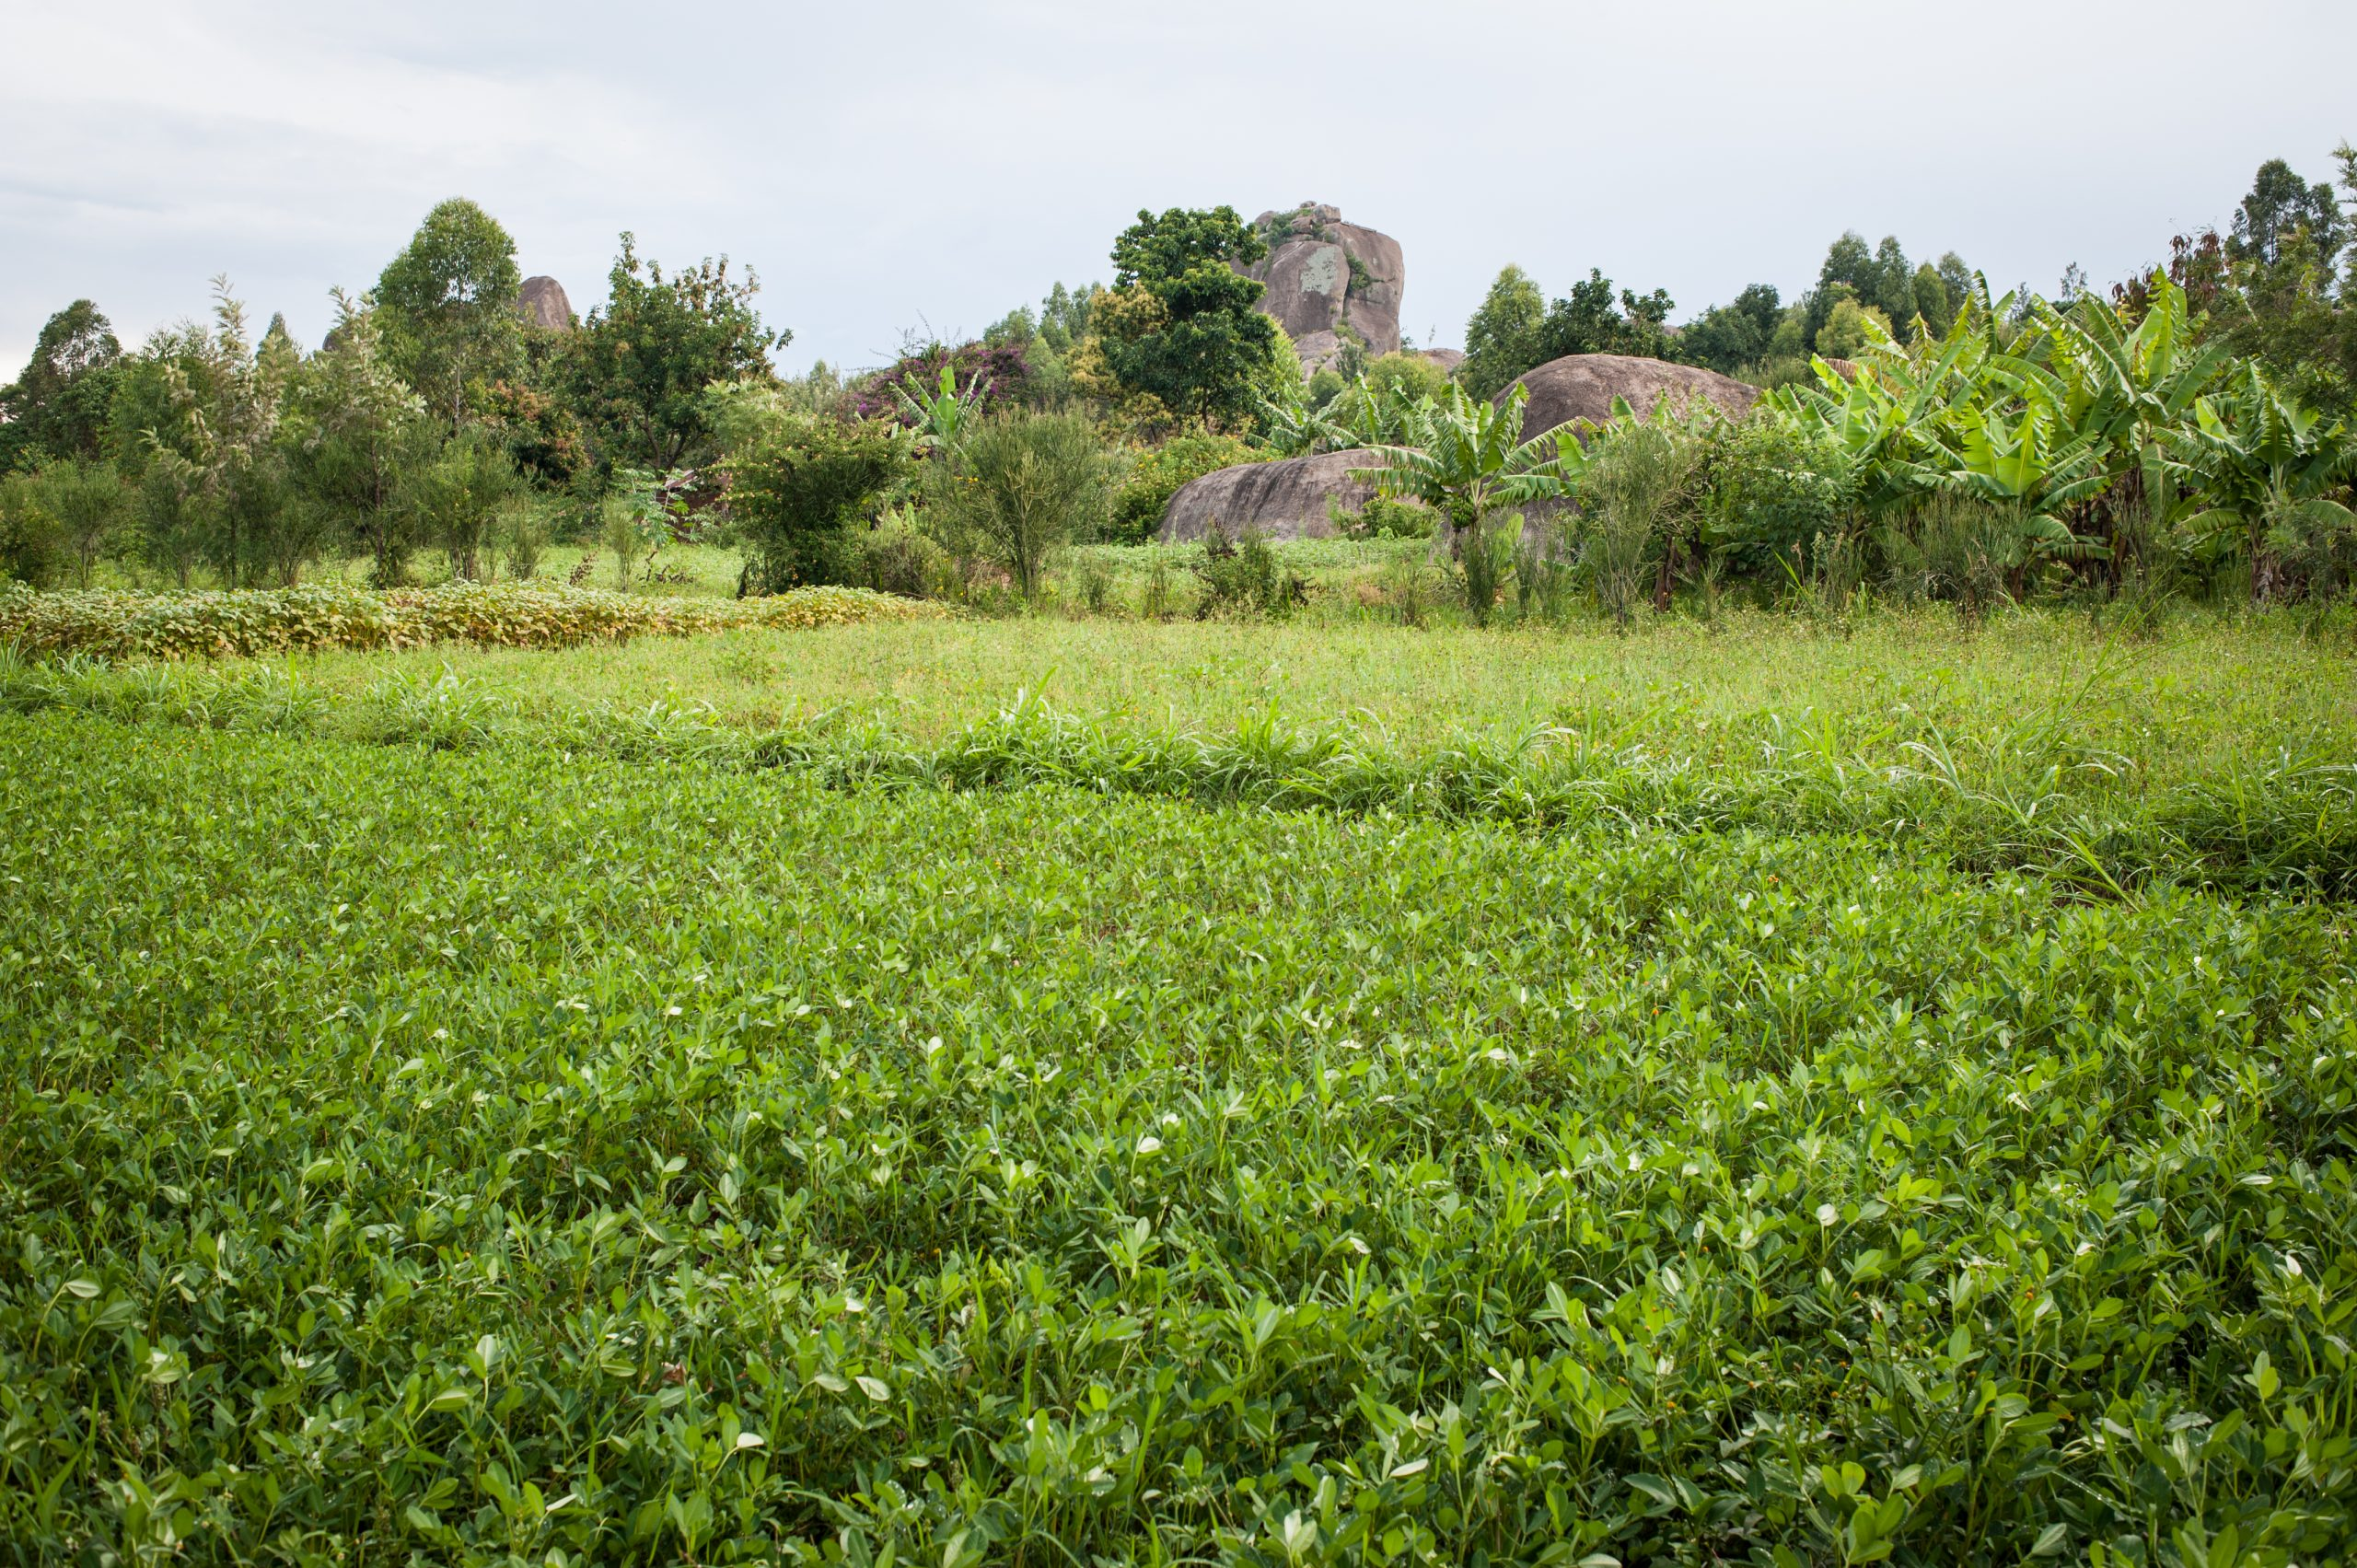 Enabling environment and smallholder finance: A complex relationship